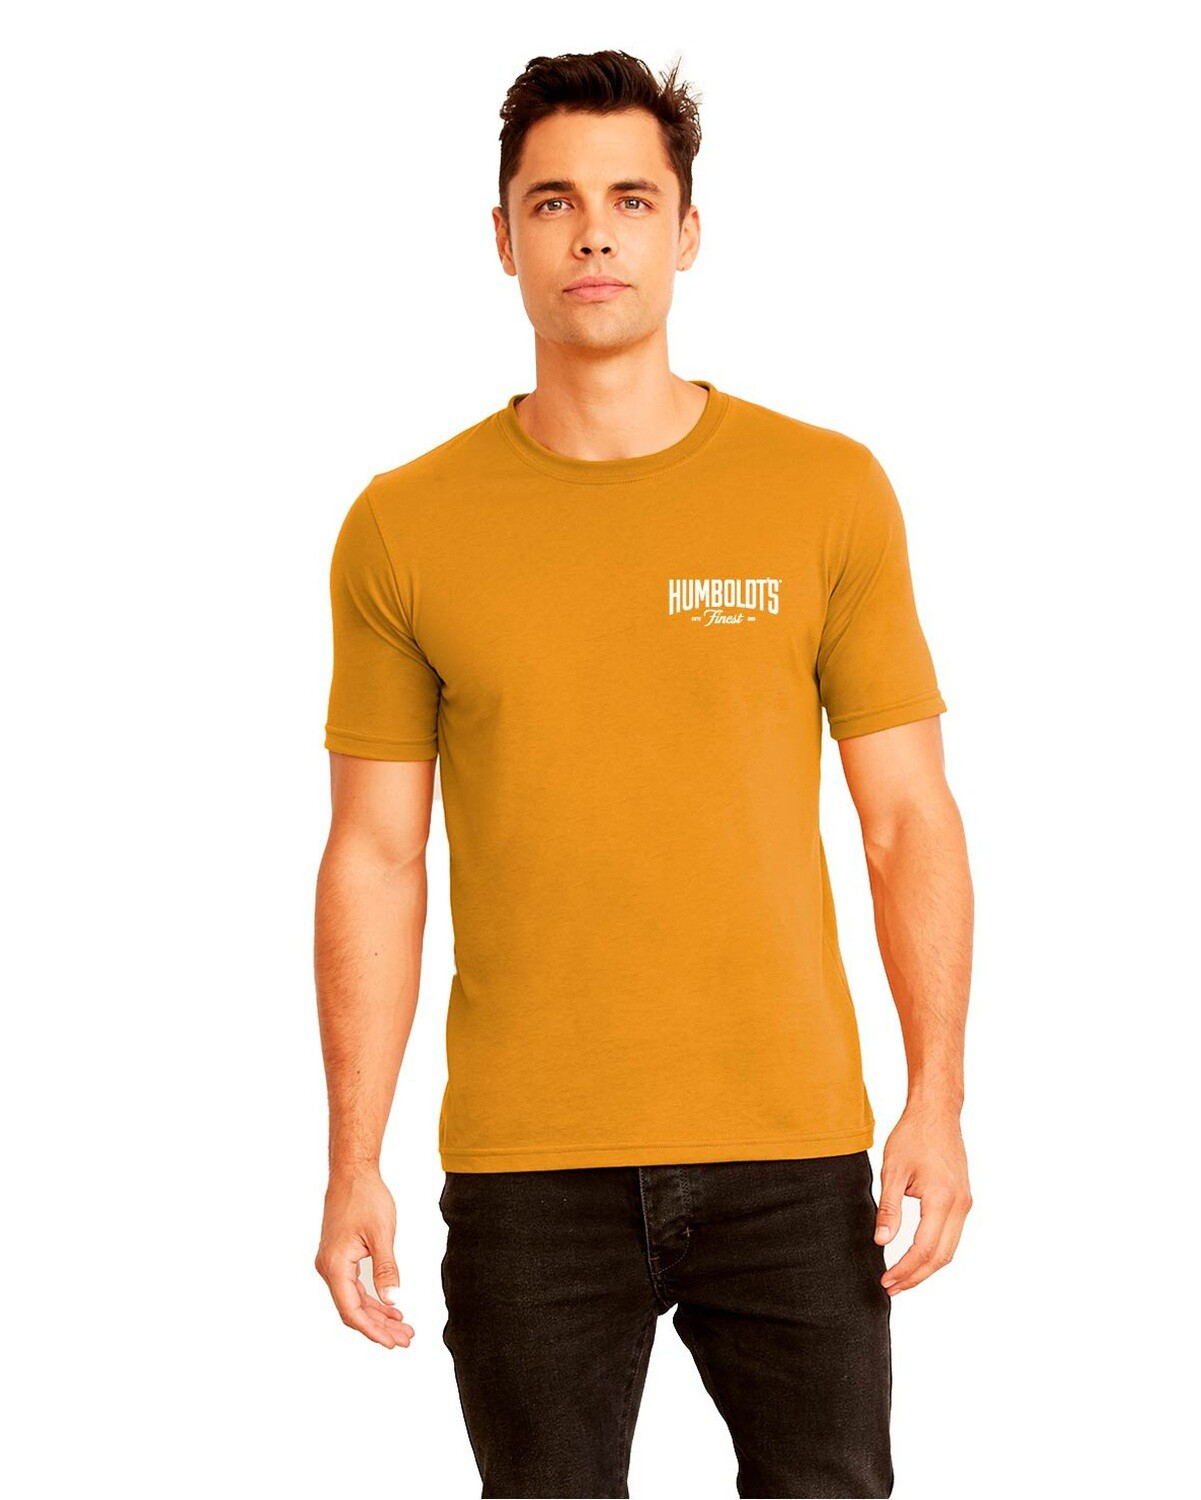 Humboldt's Finest 100% Cotton T-Shirt